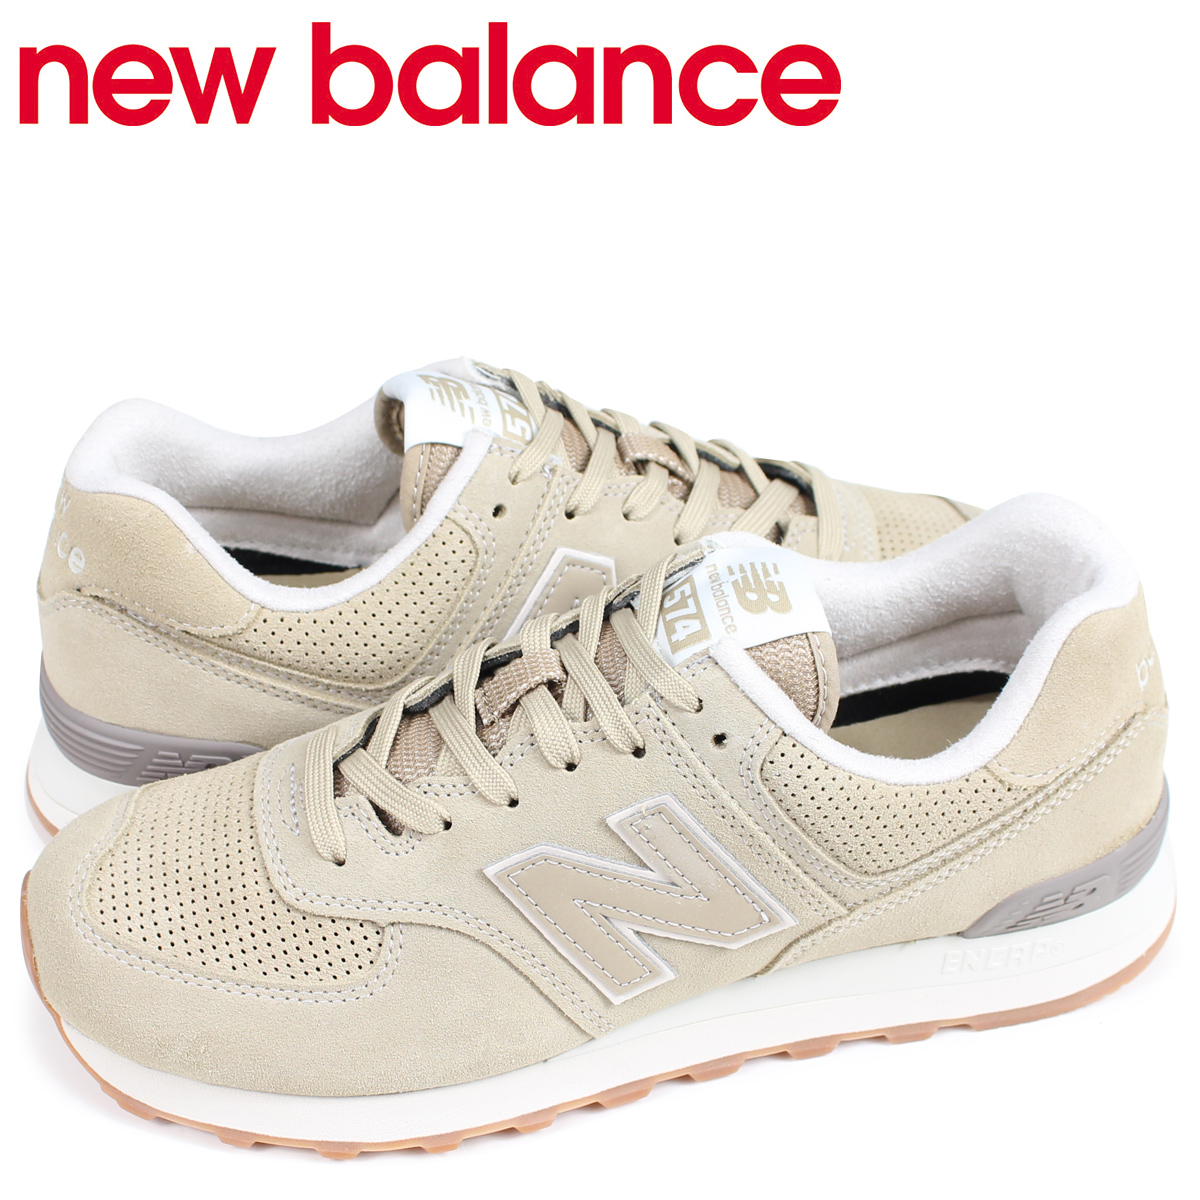 low priced aa6c4 79892  NEW BALANCE which wears it, and has a good reputation for a feeling, and  is loved for many years by sneakers freak